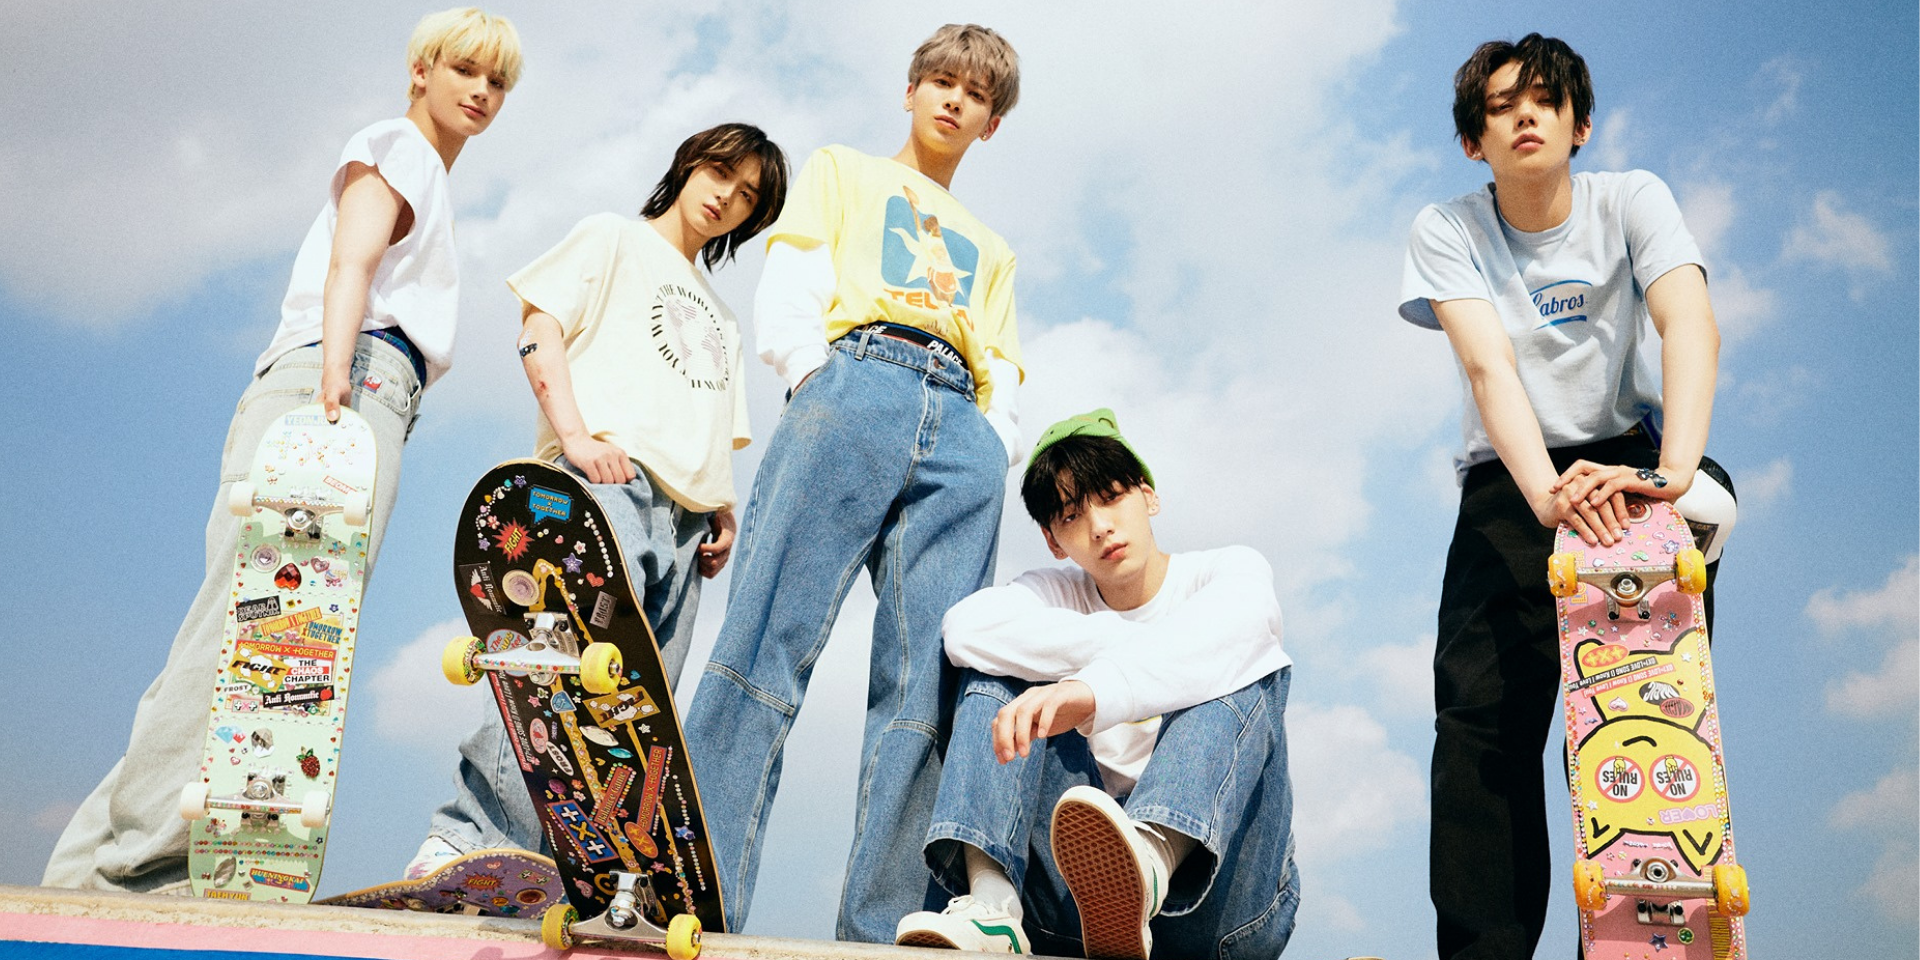 TXT release 'The Chaos Chapter: FIGHT OR ESCAPE' with music video for 'LO$ER=LO♡ER' - watch